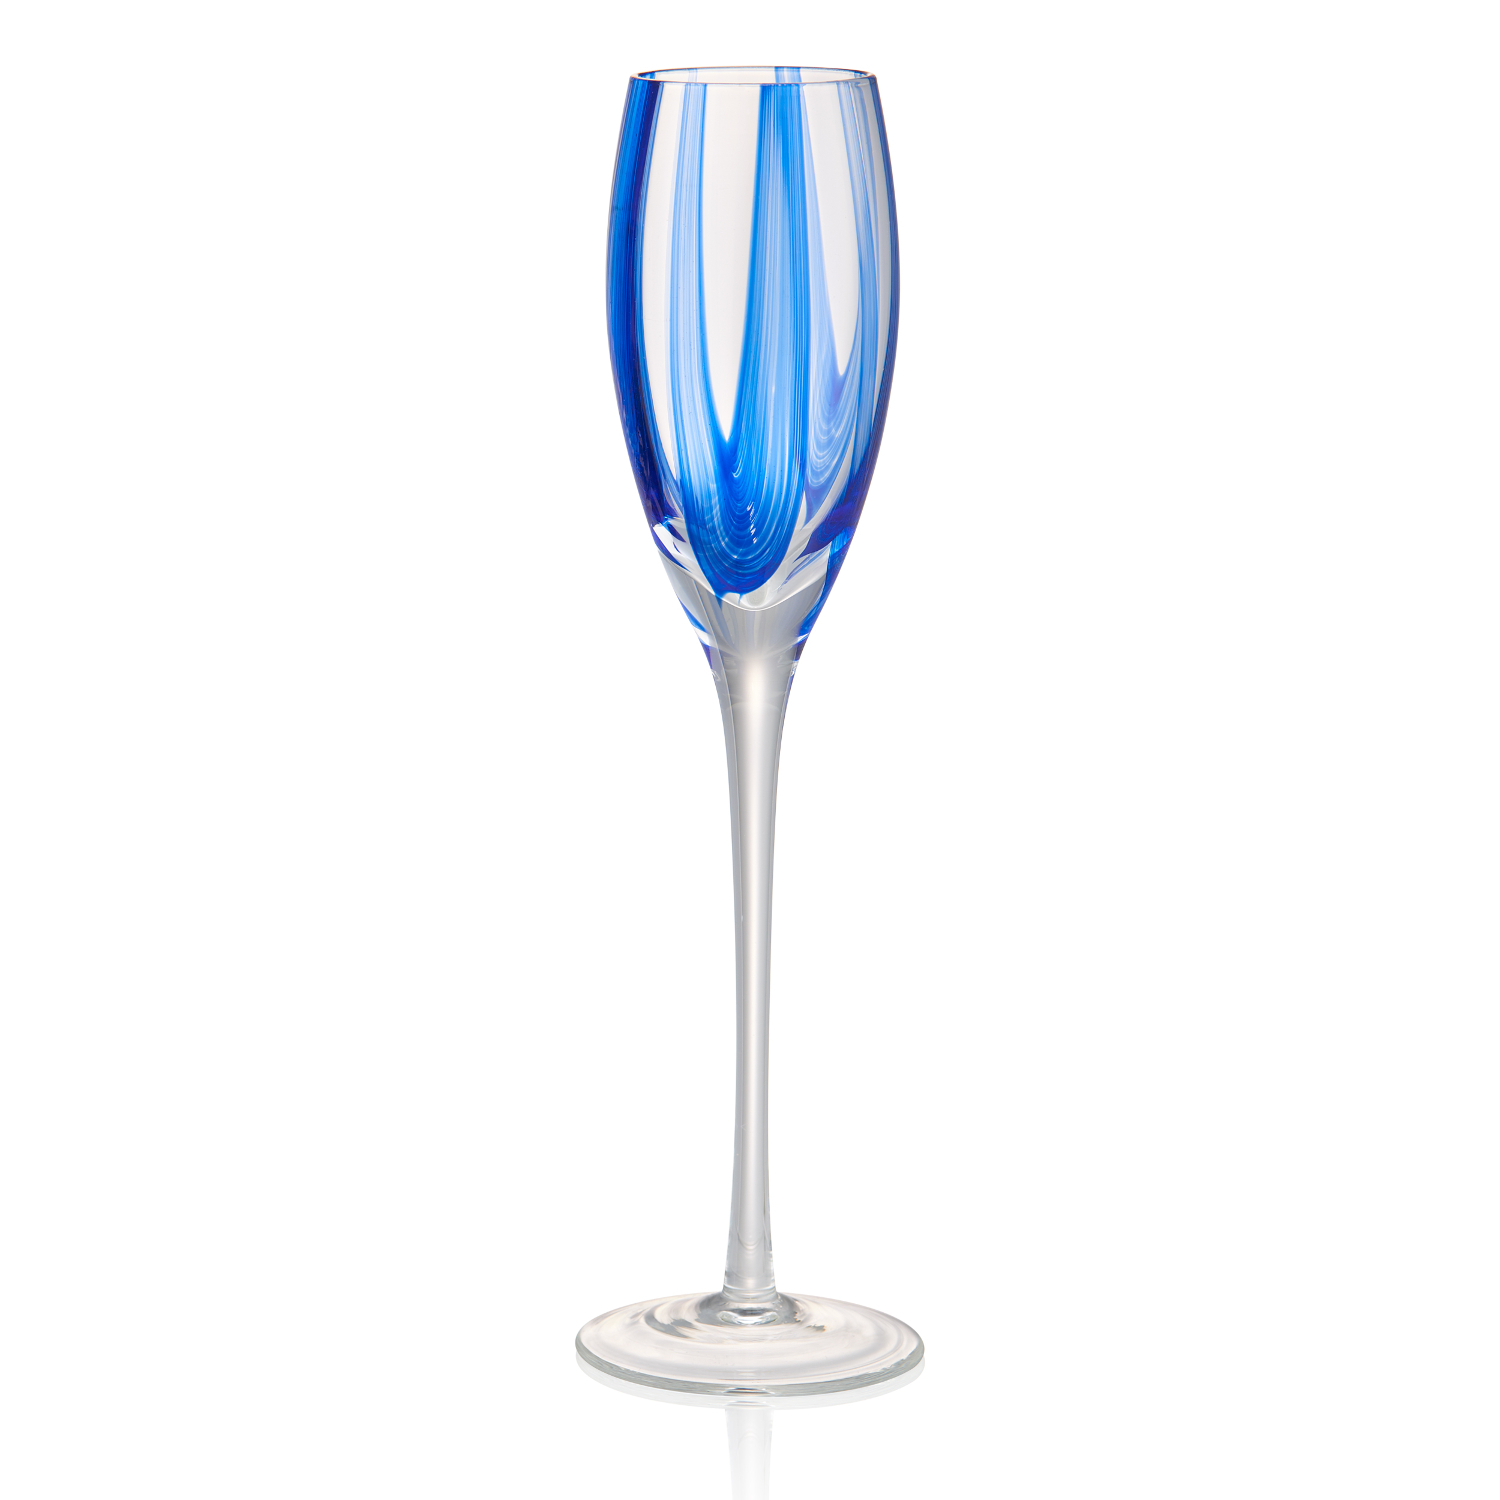 Artland Waterfall Glass 7 Ounce Flute